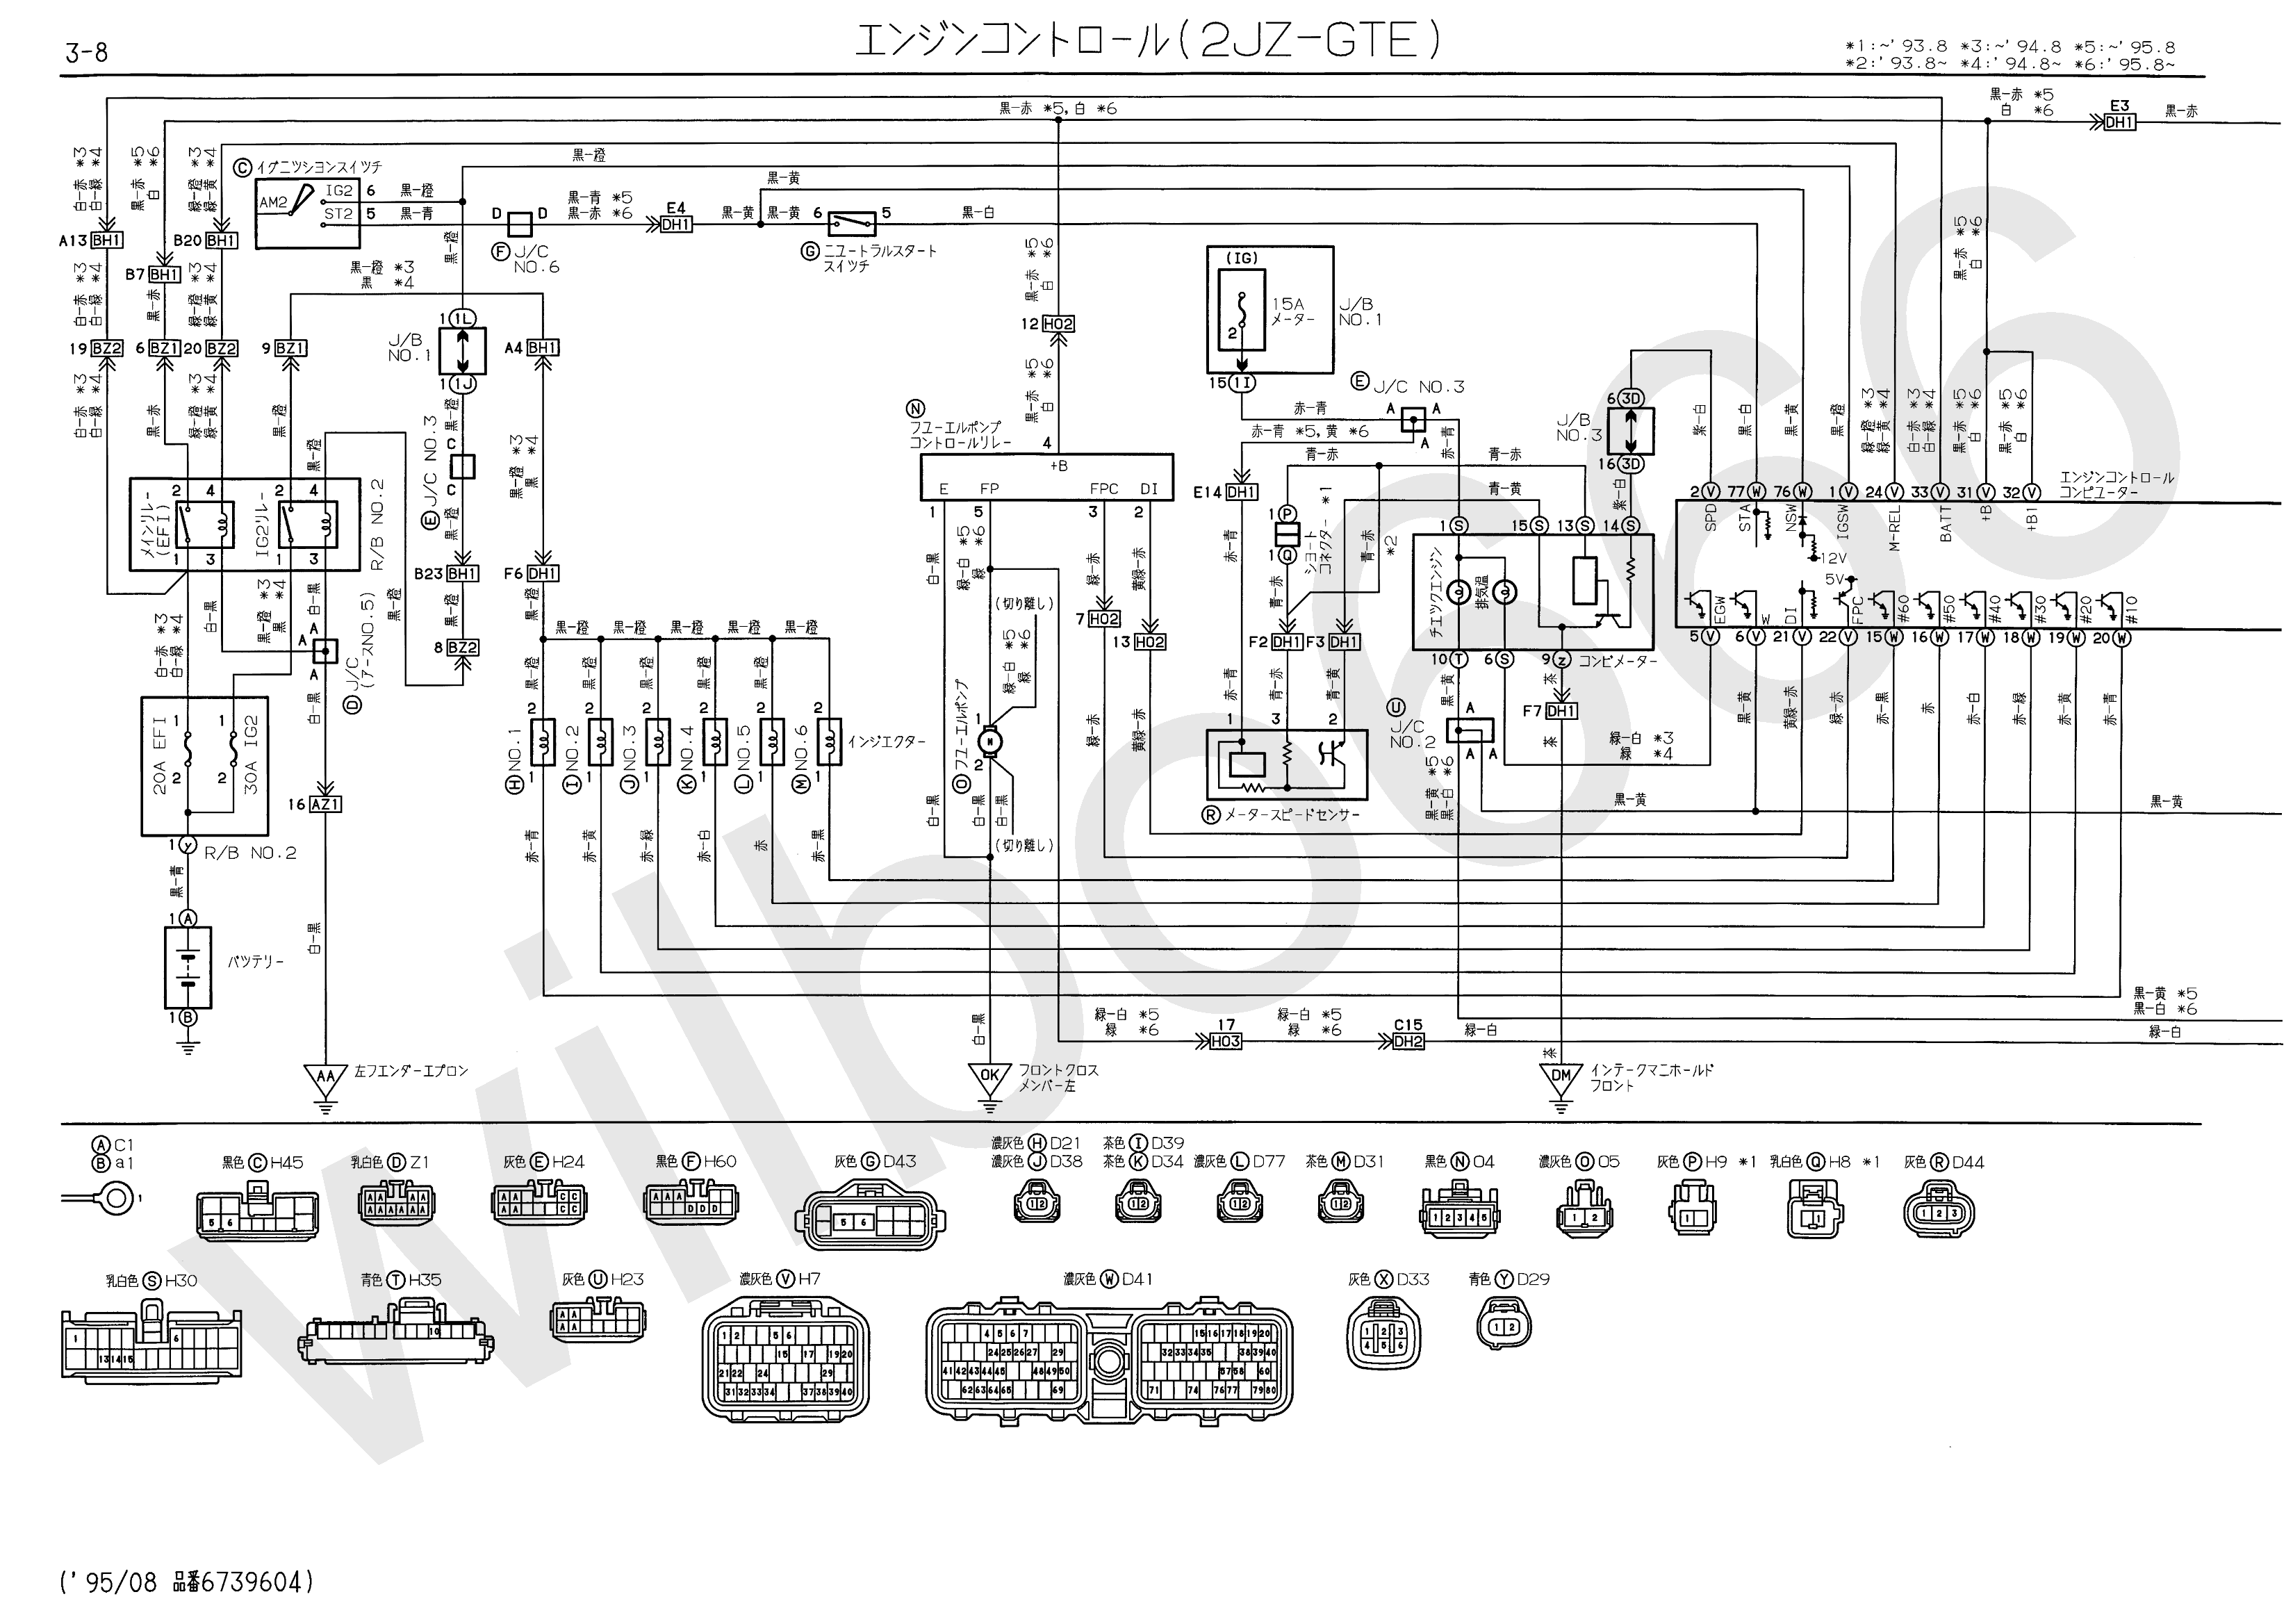 2jz Fuse Diagram Data Wiring Diagrams Lexus Sc300 Pdf Wilbo666 Gte Jzs147 Aristo Engine 2jzgte Toyota Ignitor